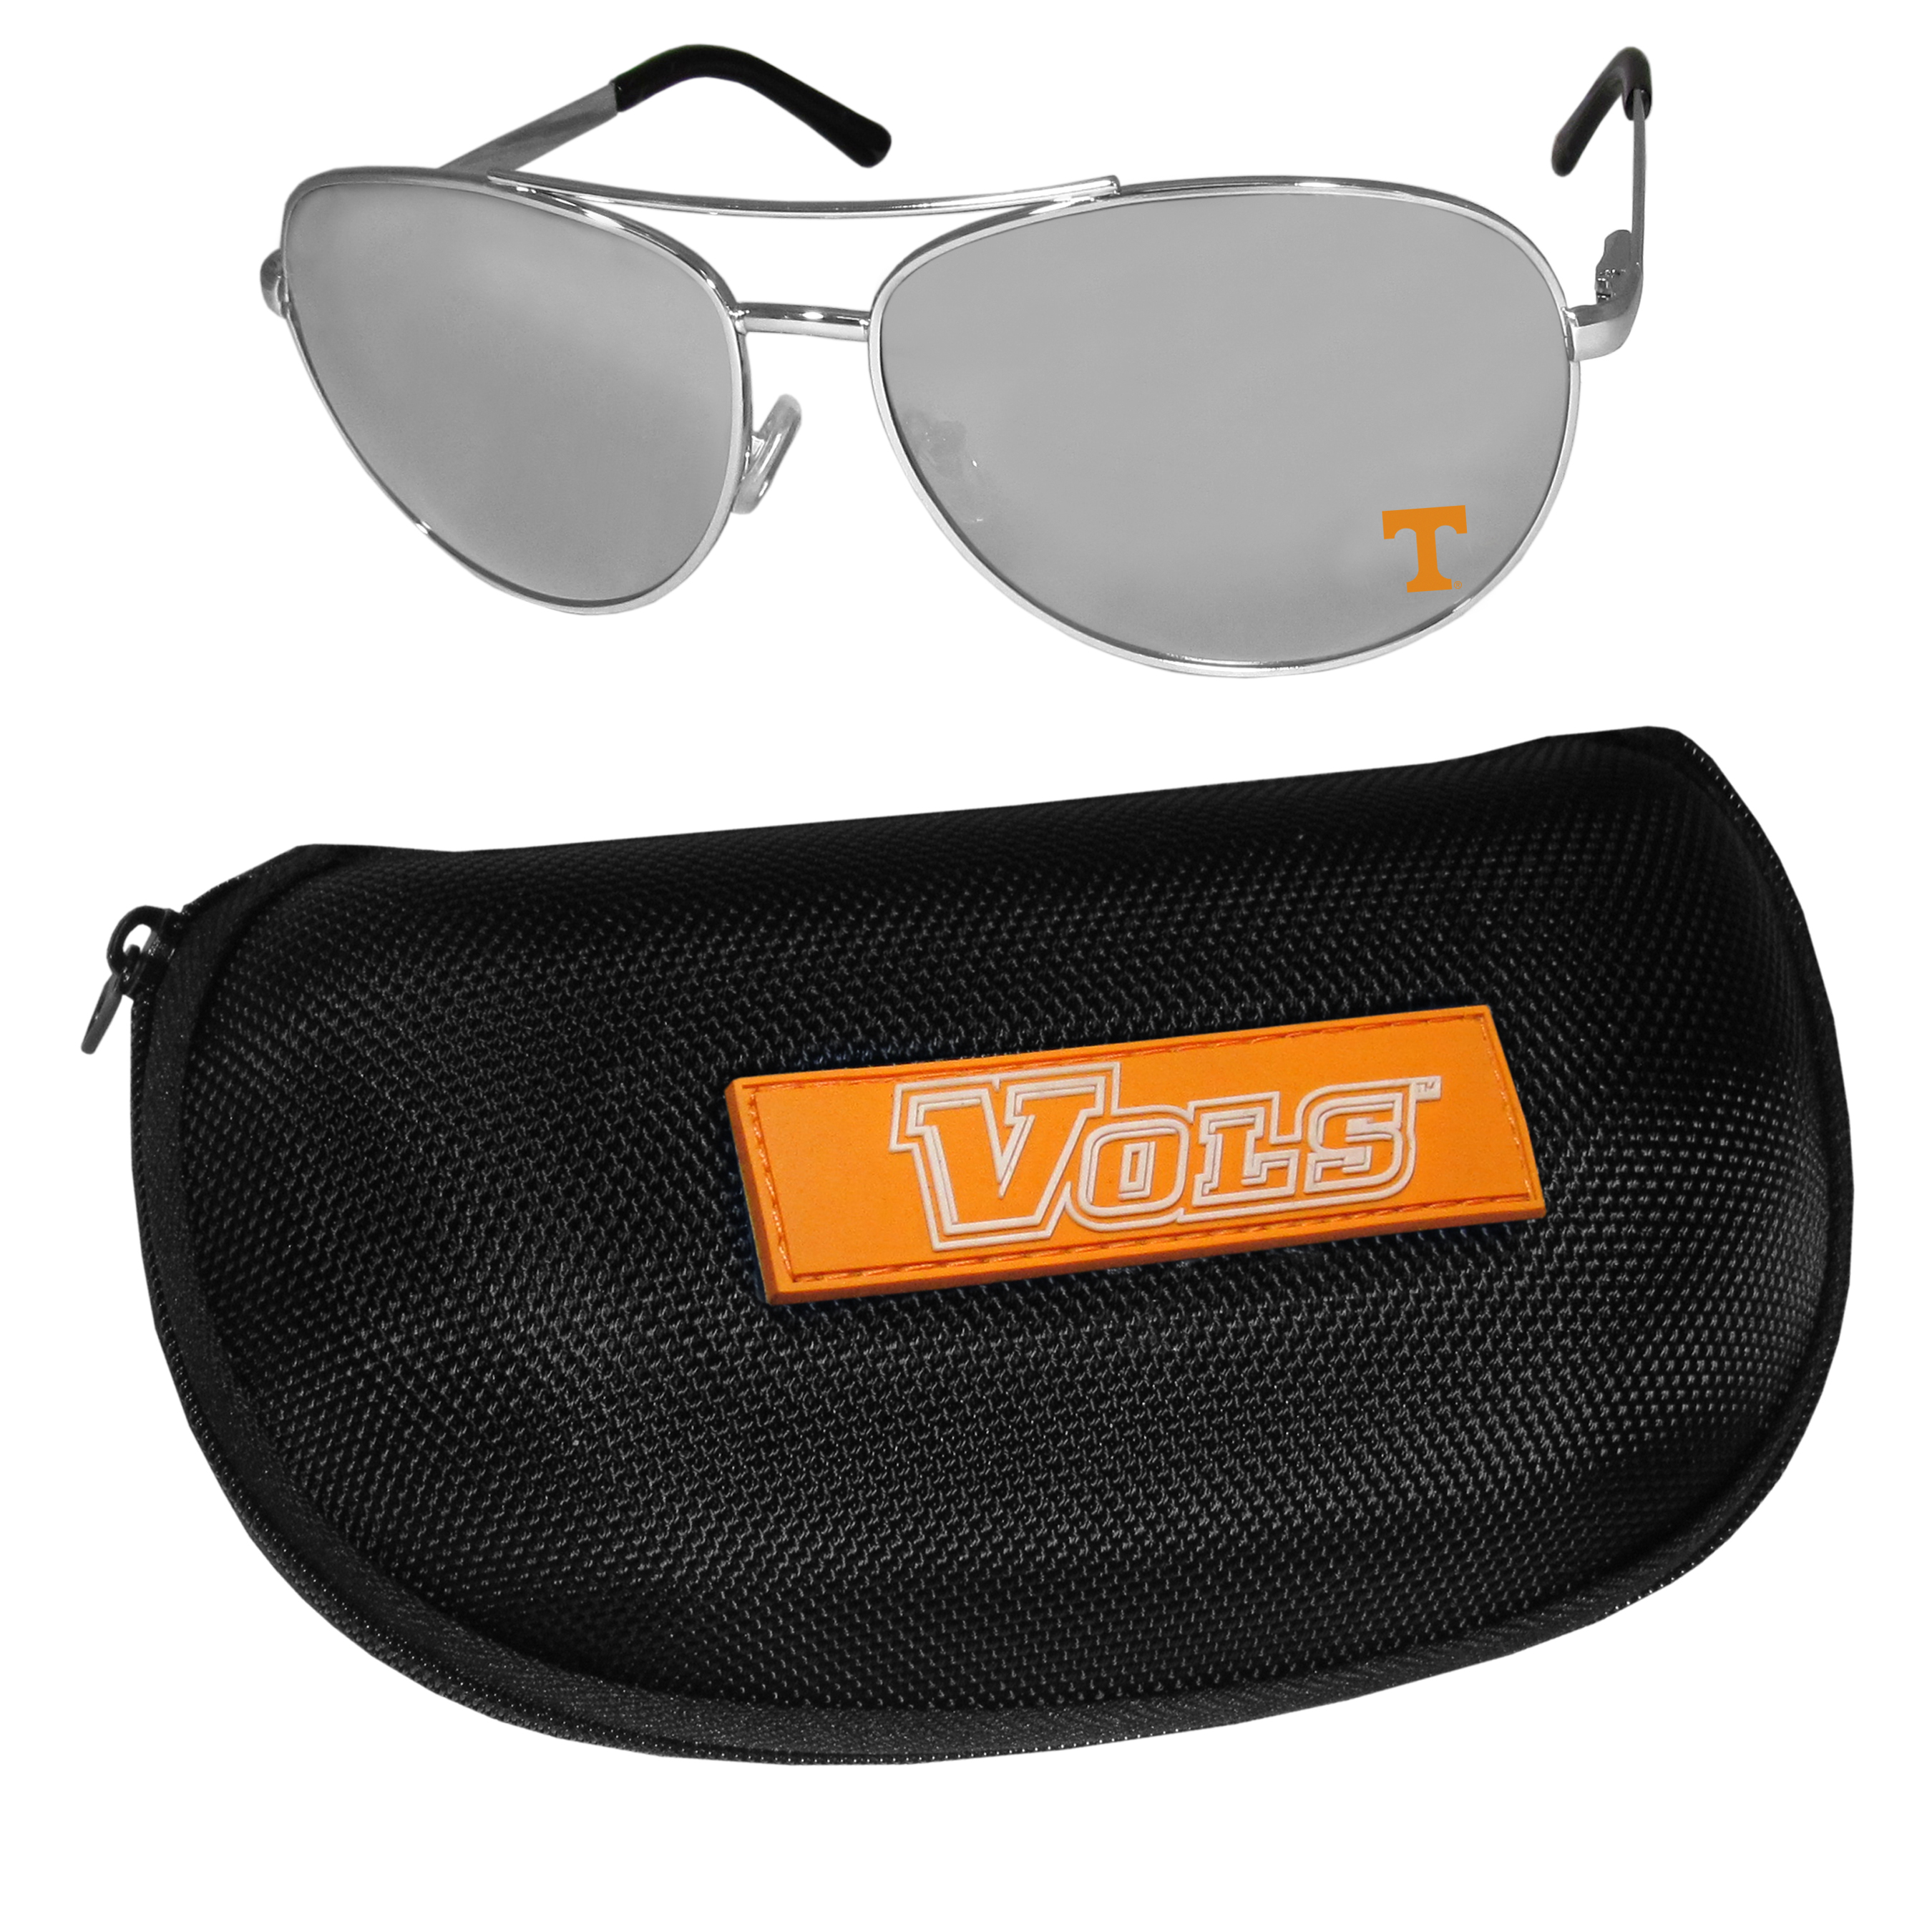 Tennessee Volunteers Aviator Sunglasses and Zippered Carrying Case - Aviator sunglasses are truly an iconic retro fashion statement that never goes out-of-style. Our Tennessee Volunteers  aviator sunglasses pair this classic look with your love of the game. The iridium coated lenses reduce glare while driving, boating, golfing and their 100% UVA/UVB rating provides you with the maximum UV protection for all your outdoor activities. A millennial favorite, these affordable designer frames are the perfect eyewear accessory for a sports fan that is looking for high-quality at an affordable price. The durable, flex hinged frames are tough enough for hiking and camping or if you prefer sun bathing by the pool or on the beach these shades will really stand the test of time. The sunglasses come with a hard shell zippered case which has a large team logo on the lid that will make even the most die-hard fan proud!